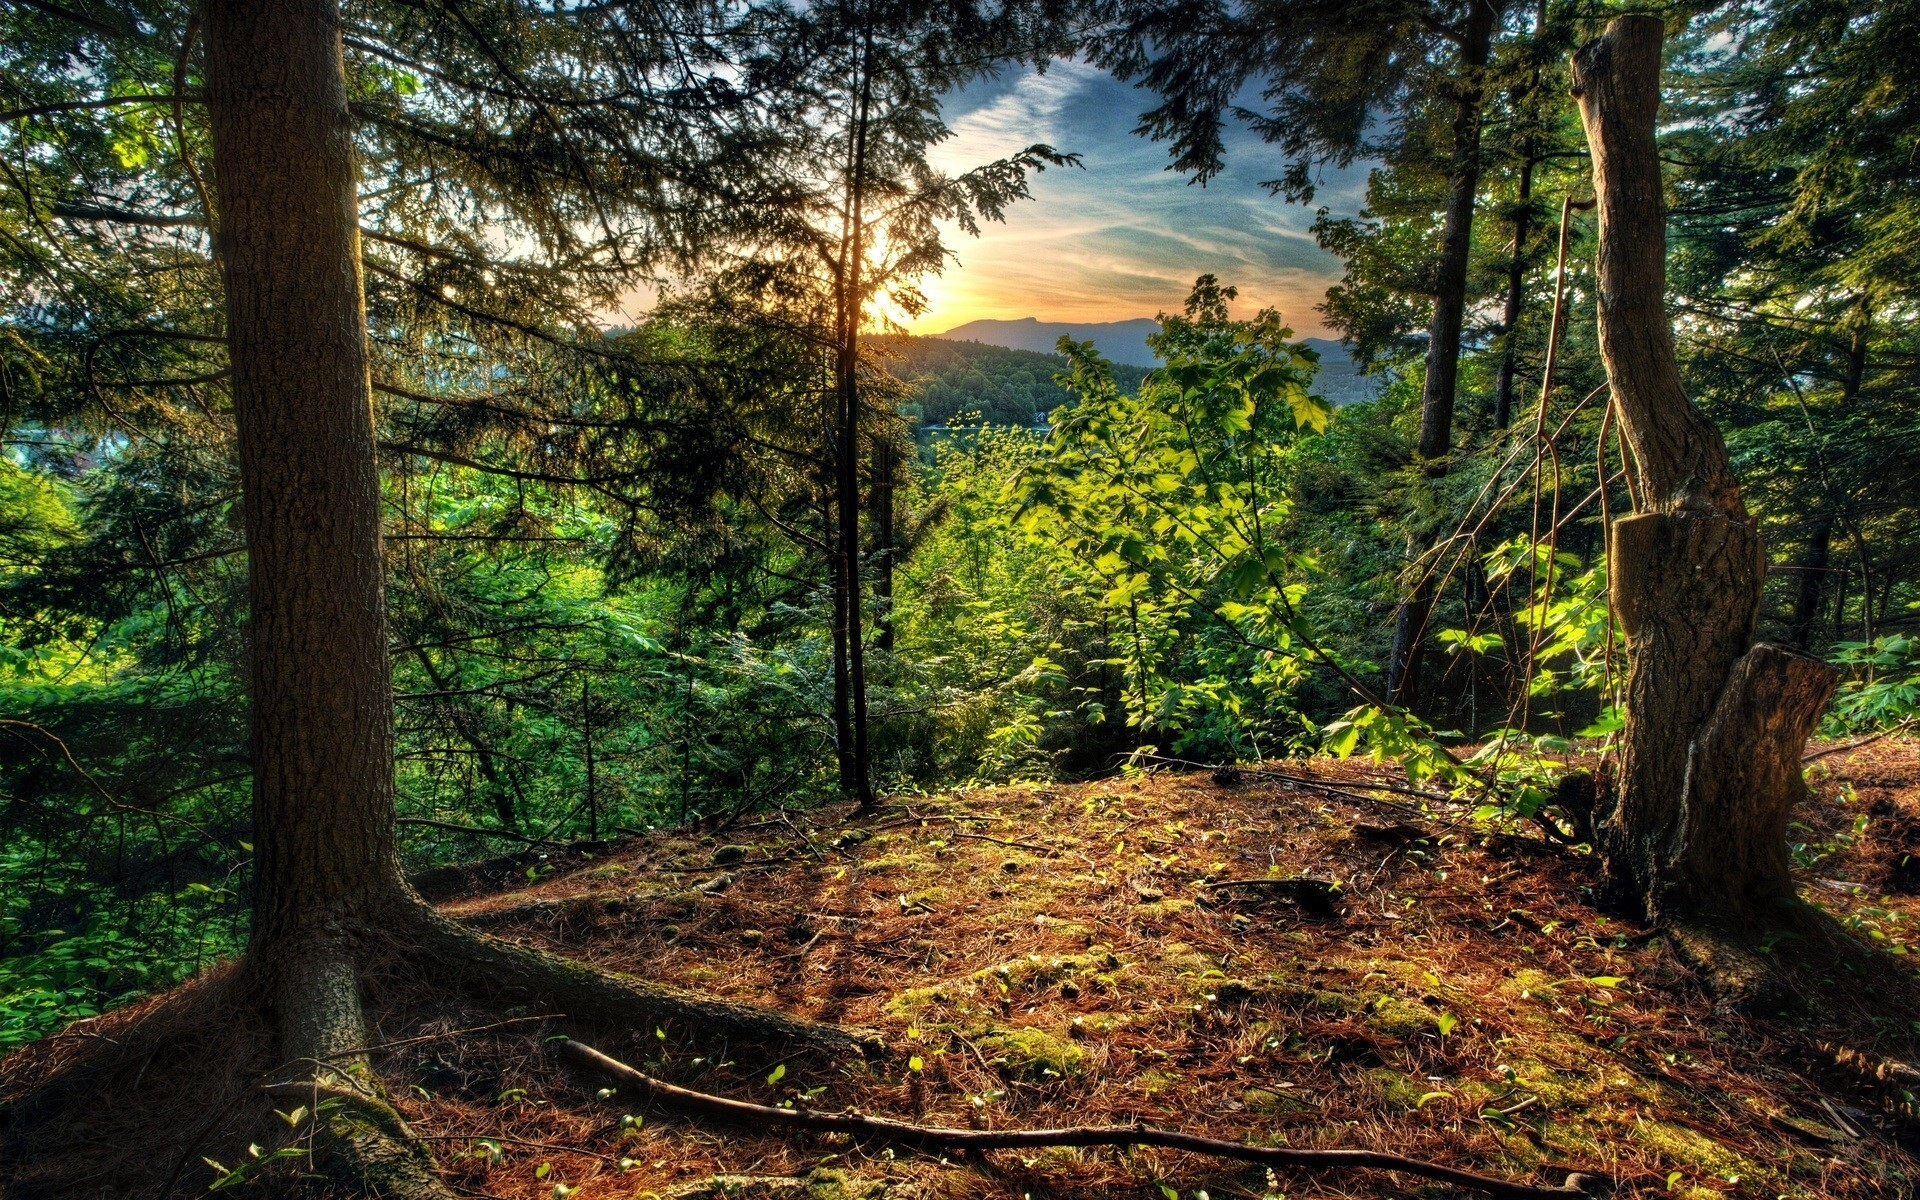 Big Beautiful Nature Green Forest Images Hd Wallpapers